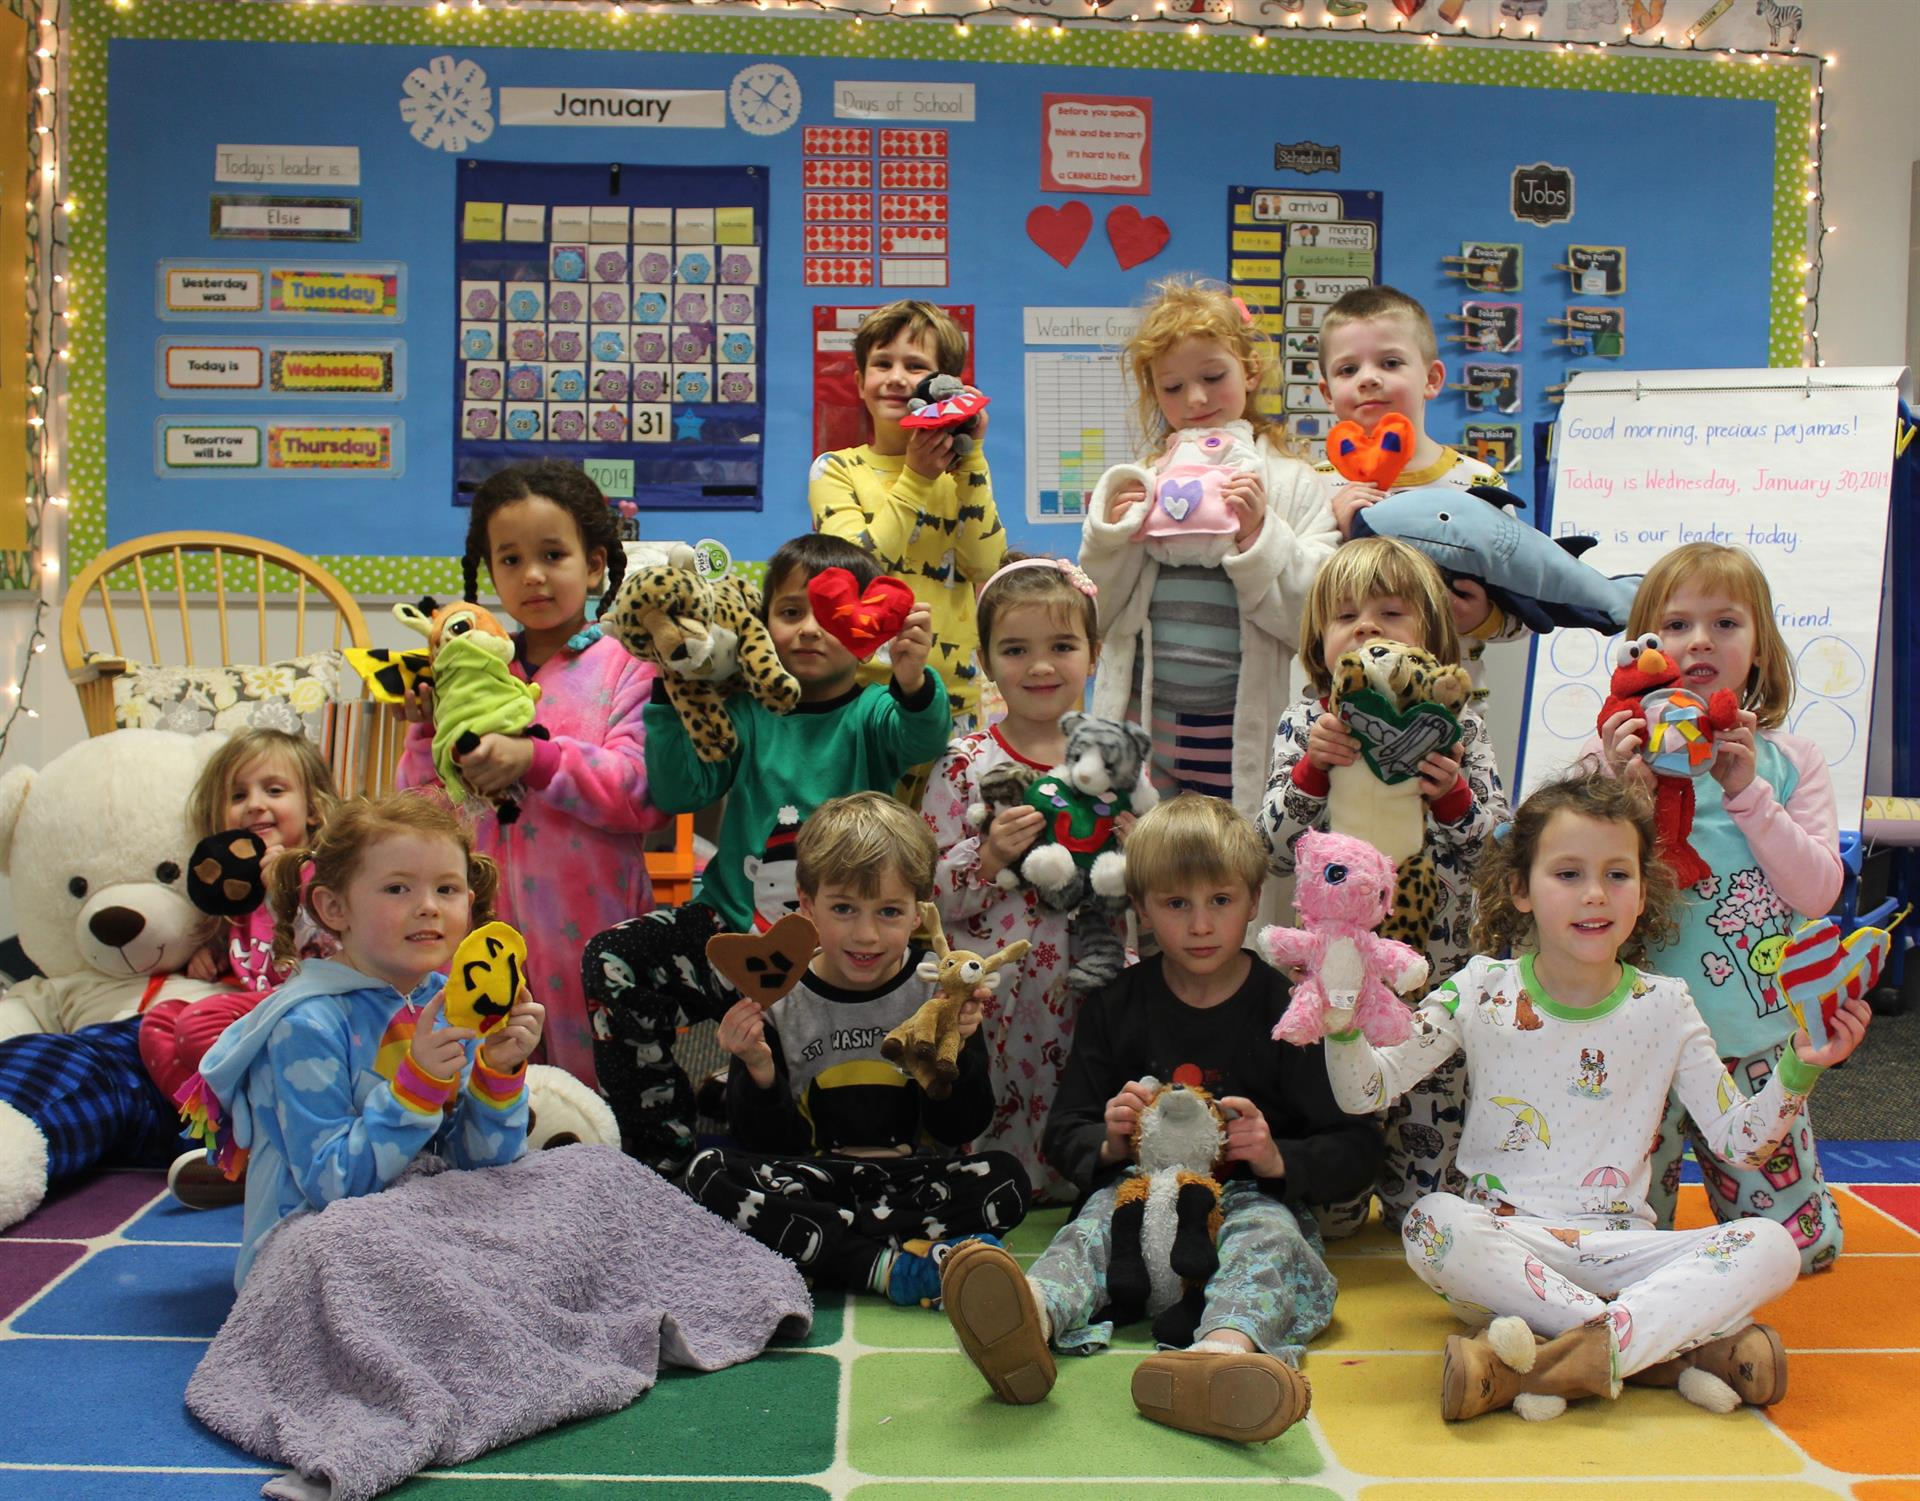 Pajama Day in Kindergarten